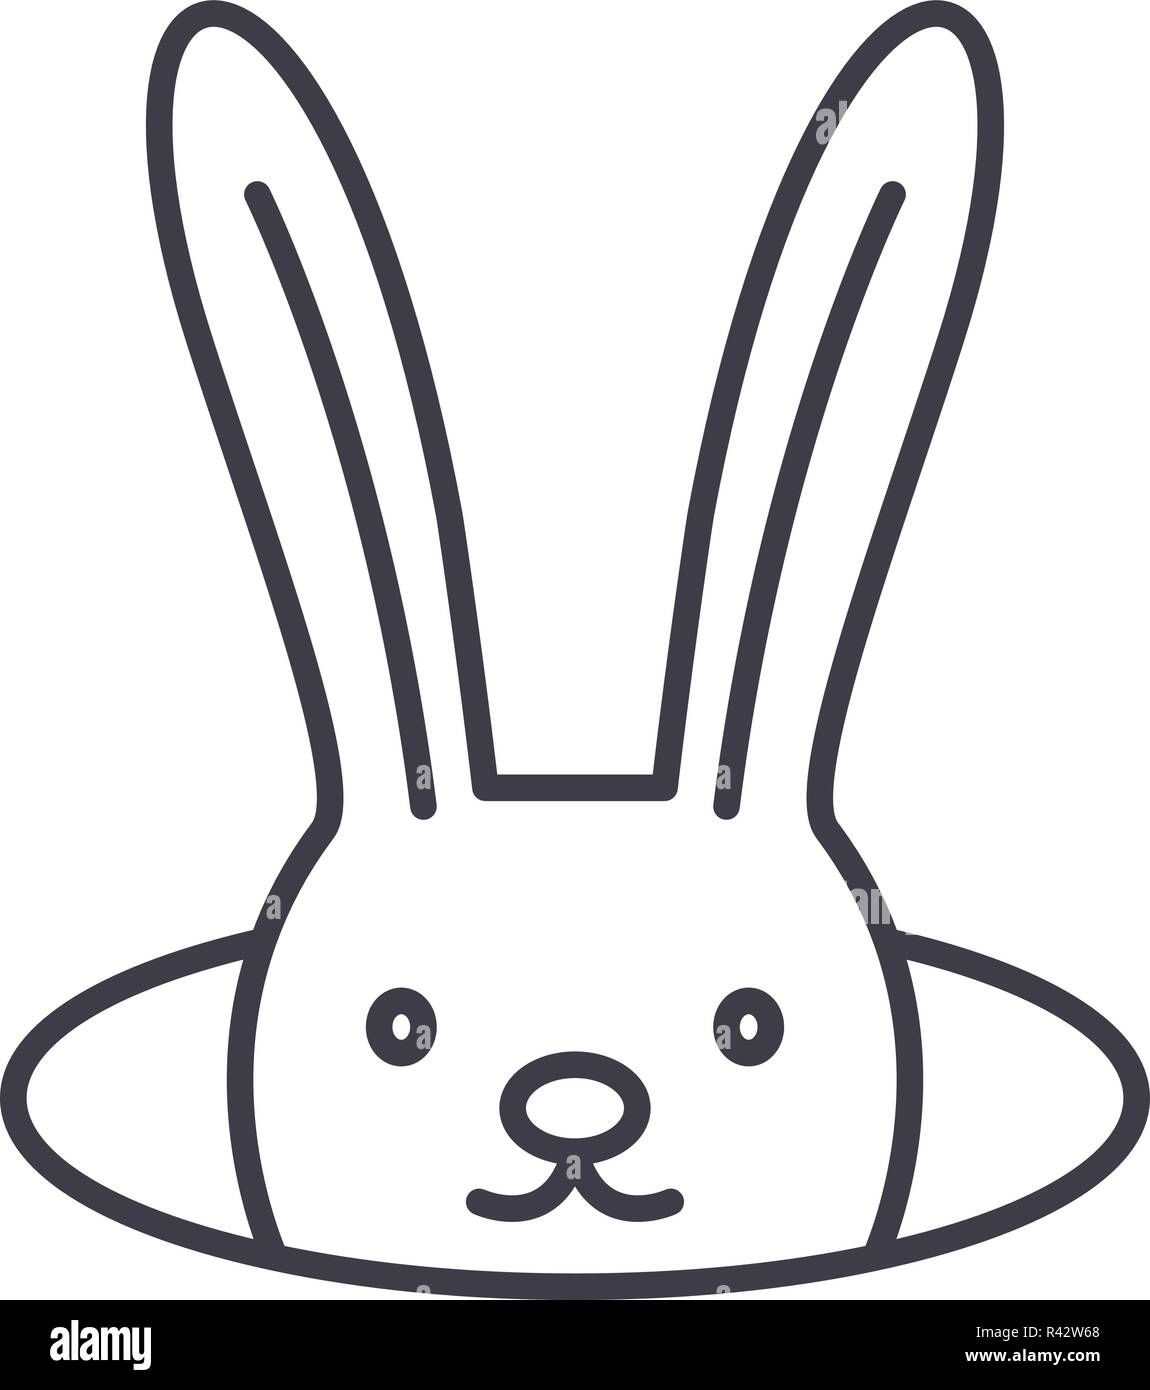 Conjure hare line icon concept. Conjure hare vector linear illustration, symbol, sign - Stock Image